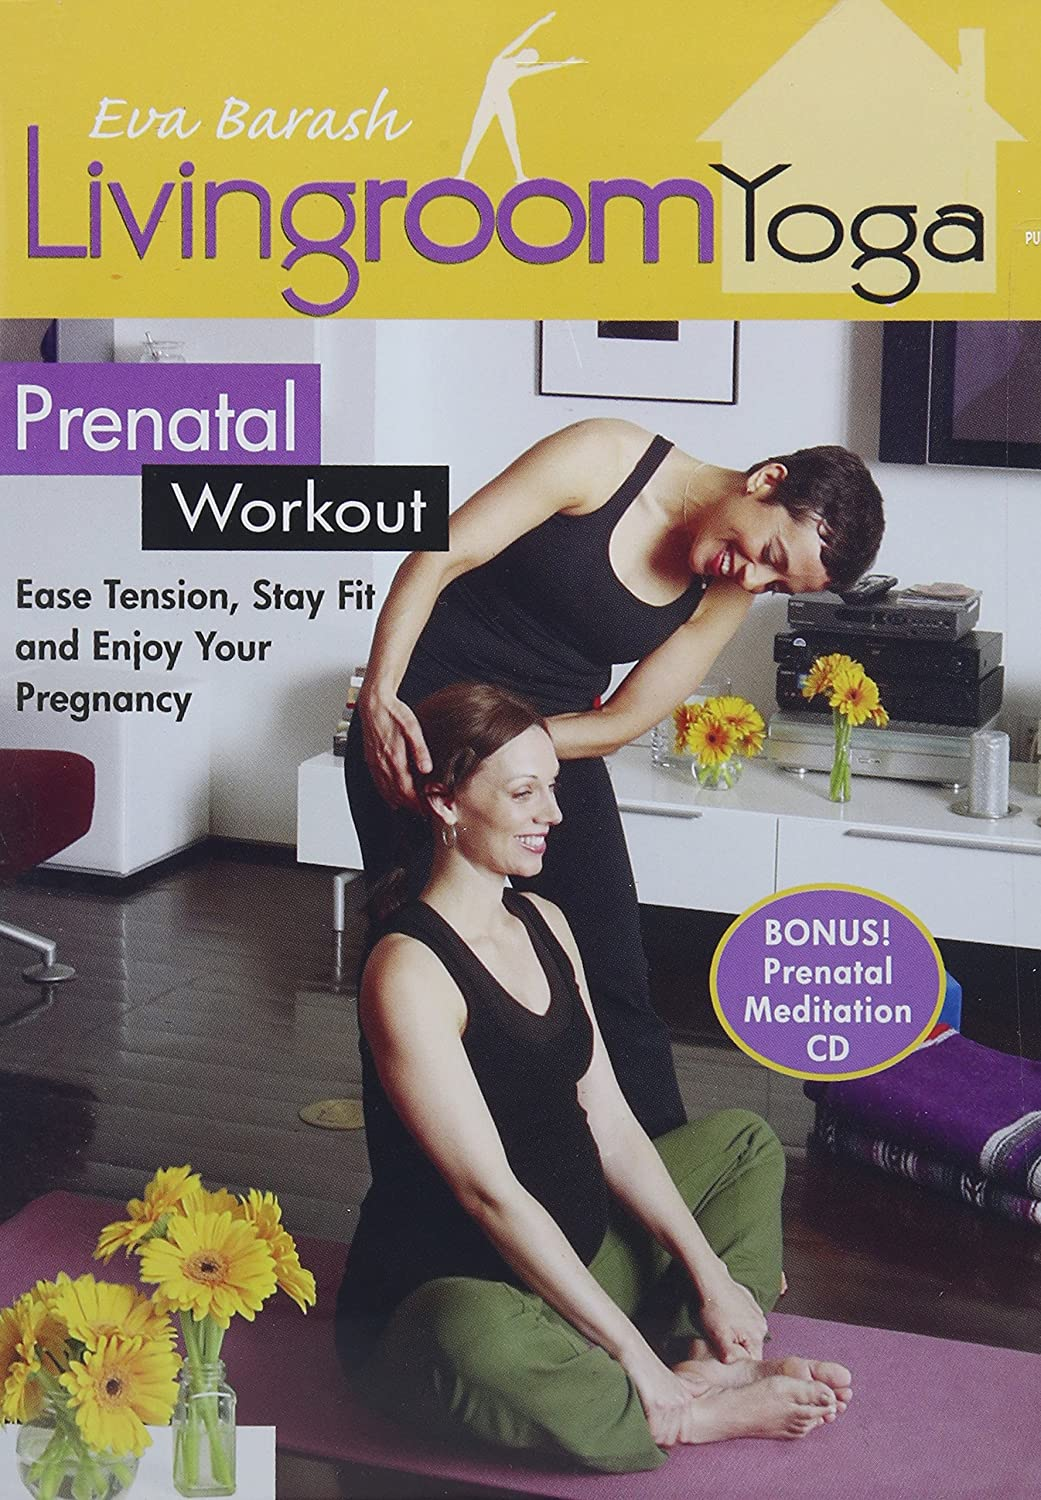 Amazon.com: Living Room Yoga Prenatal Workout [DVD]: Movies & TV